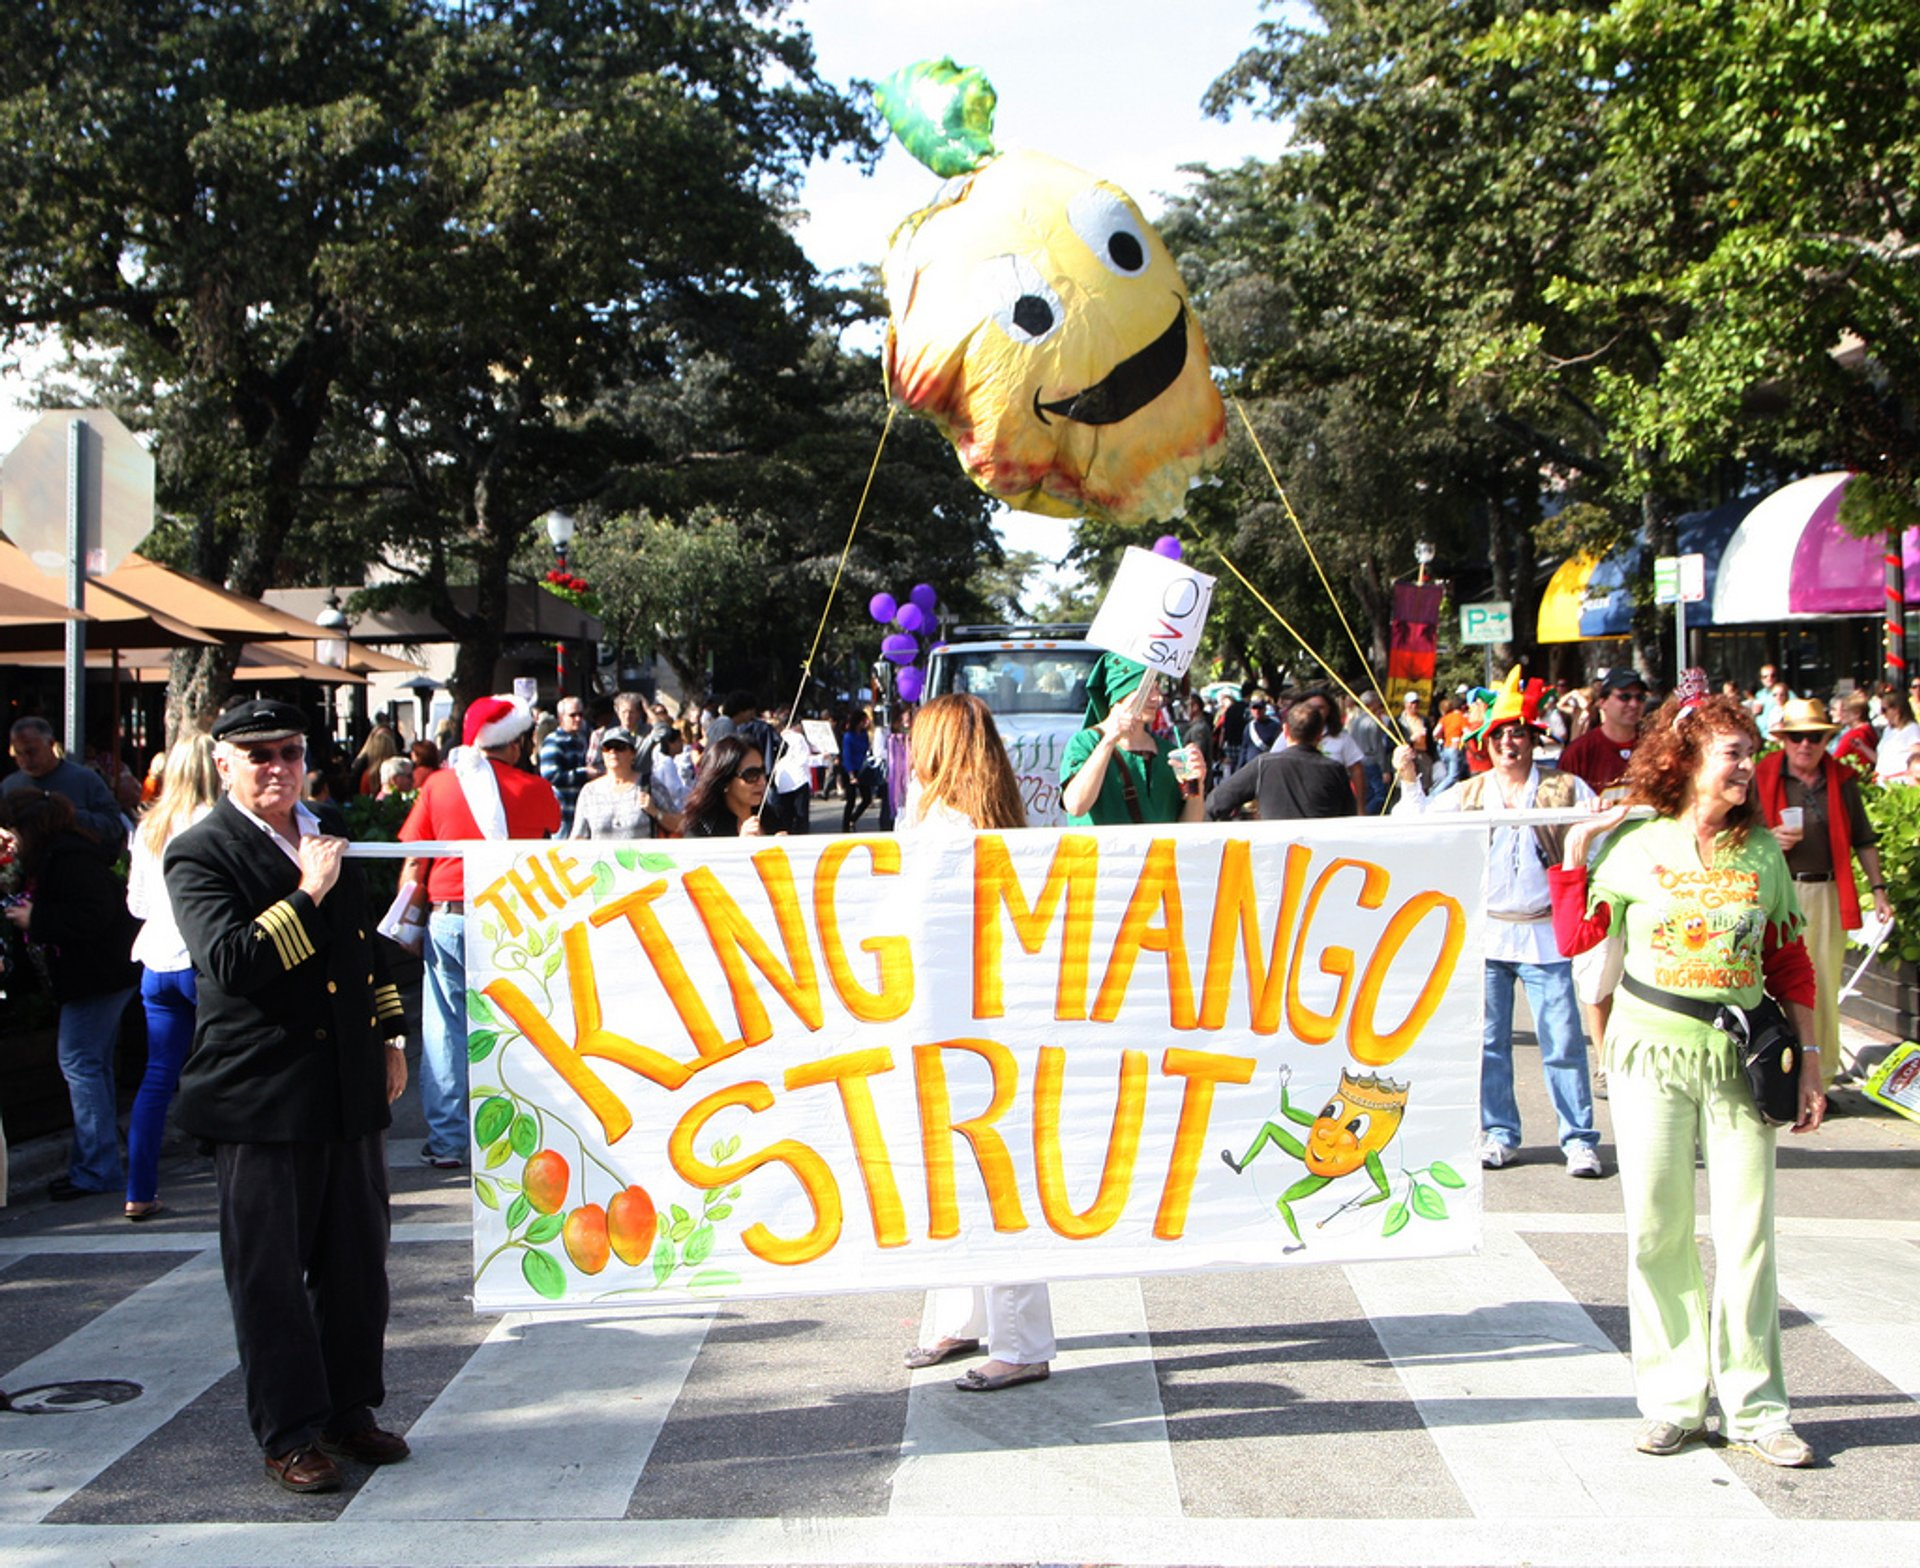 King Mango Strut in Miami - Best Time